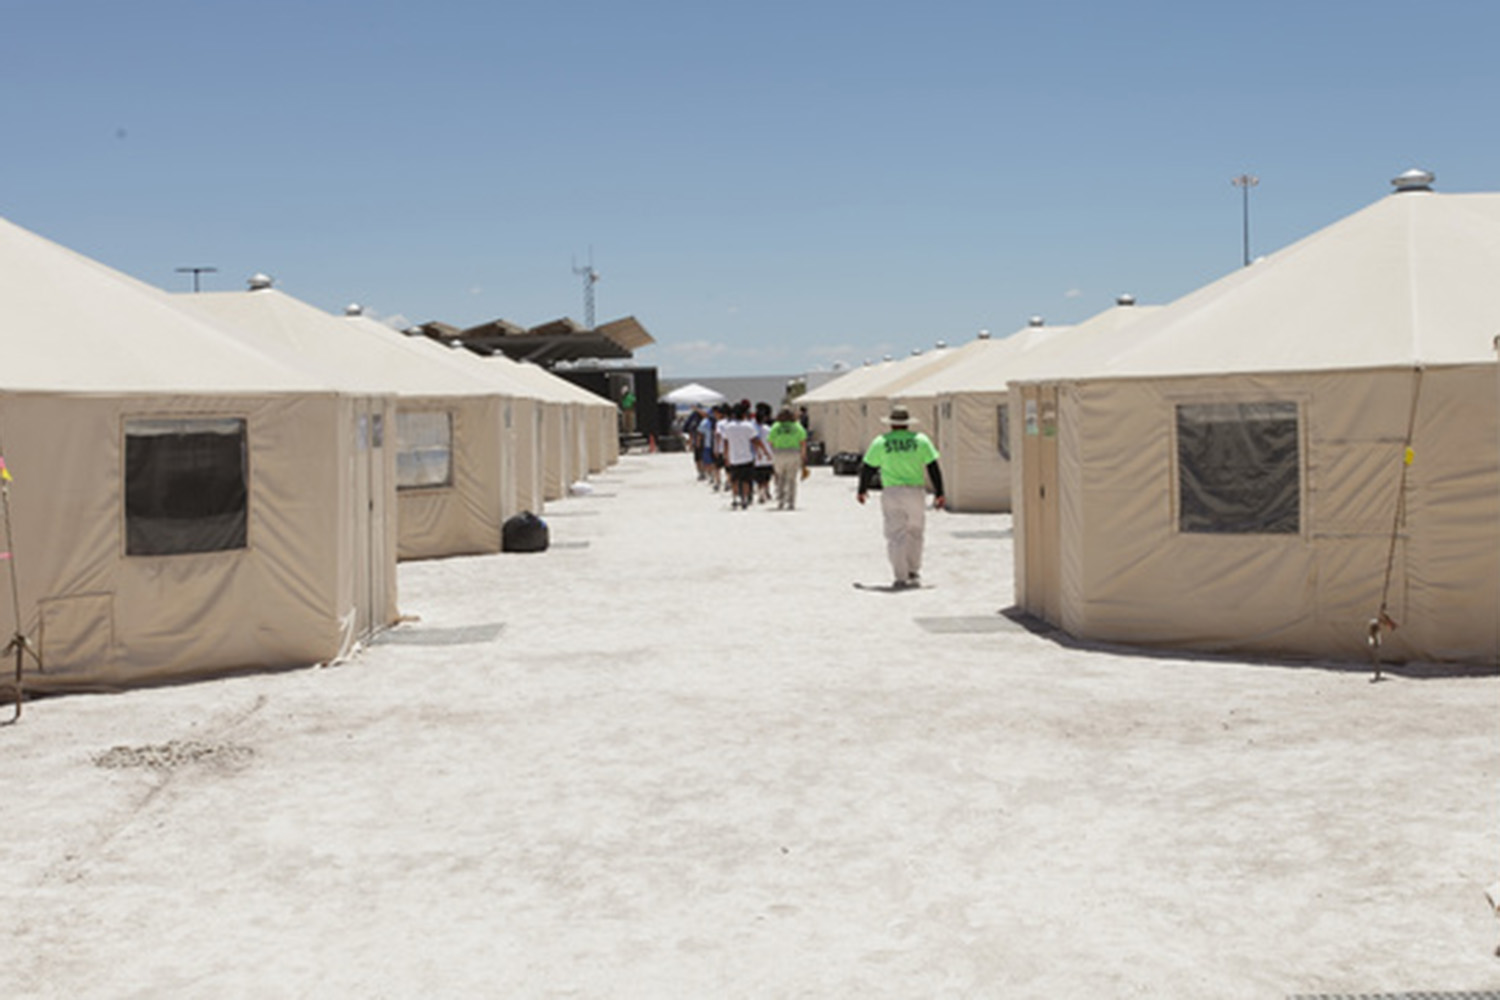 Staff accompany children inside the tent city at Tornillo, near El Paso, where undocumented immigrant minors are being held by the federal government.